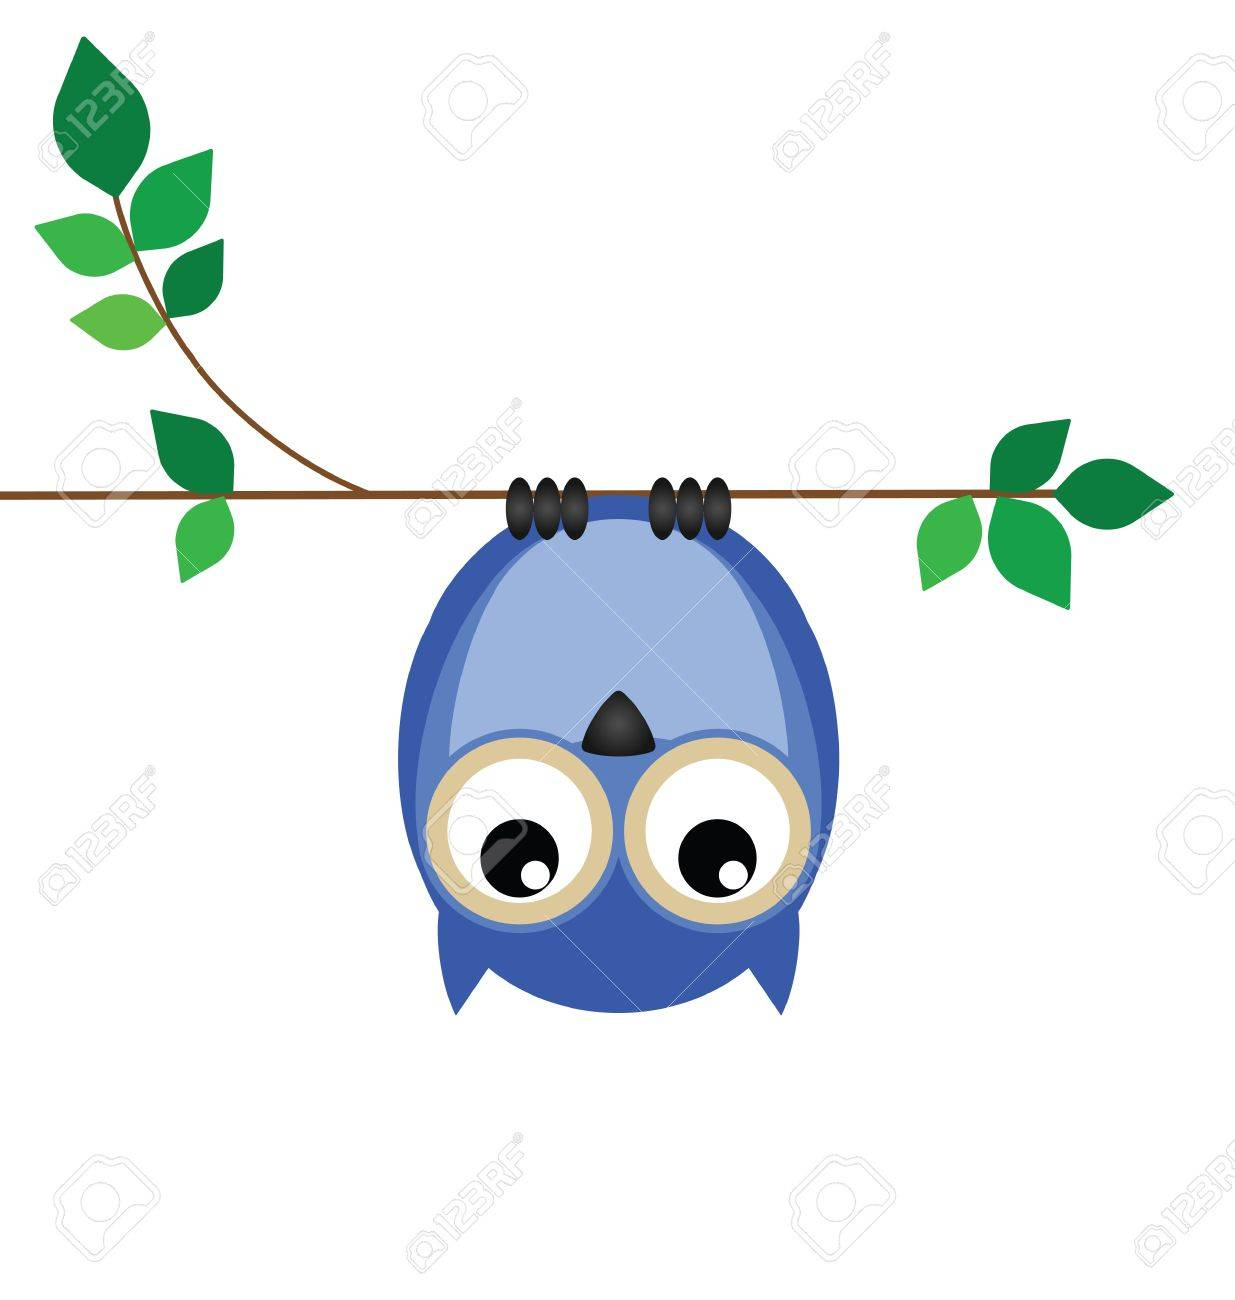 Upside down owl on a branch looking down Stock Vector - 11665902